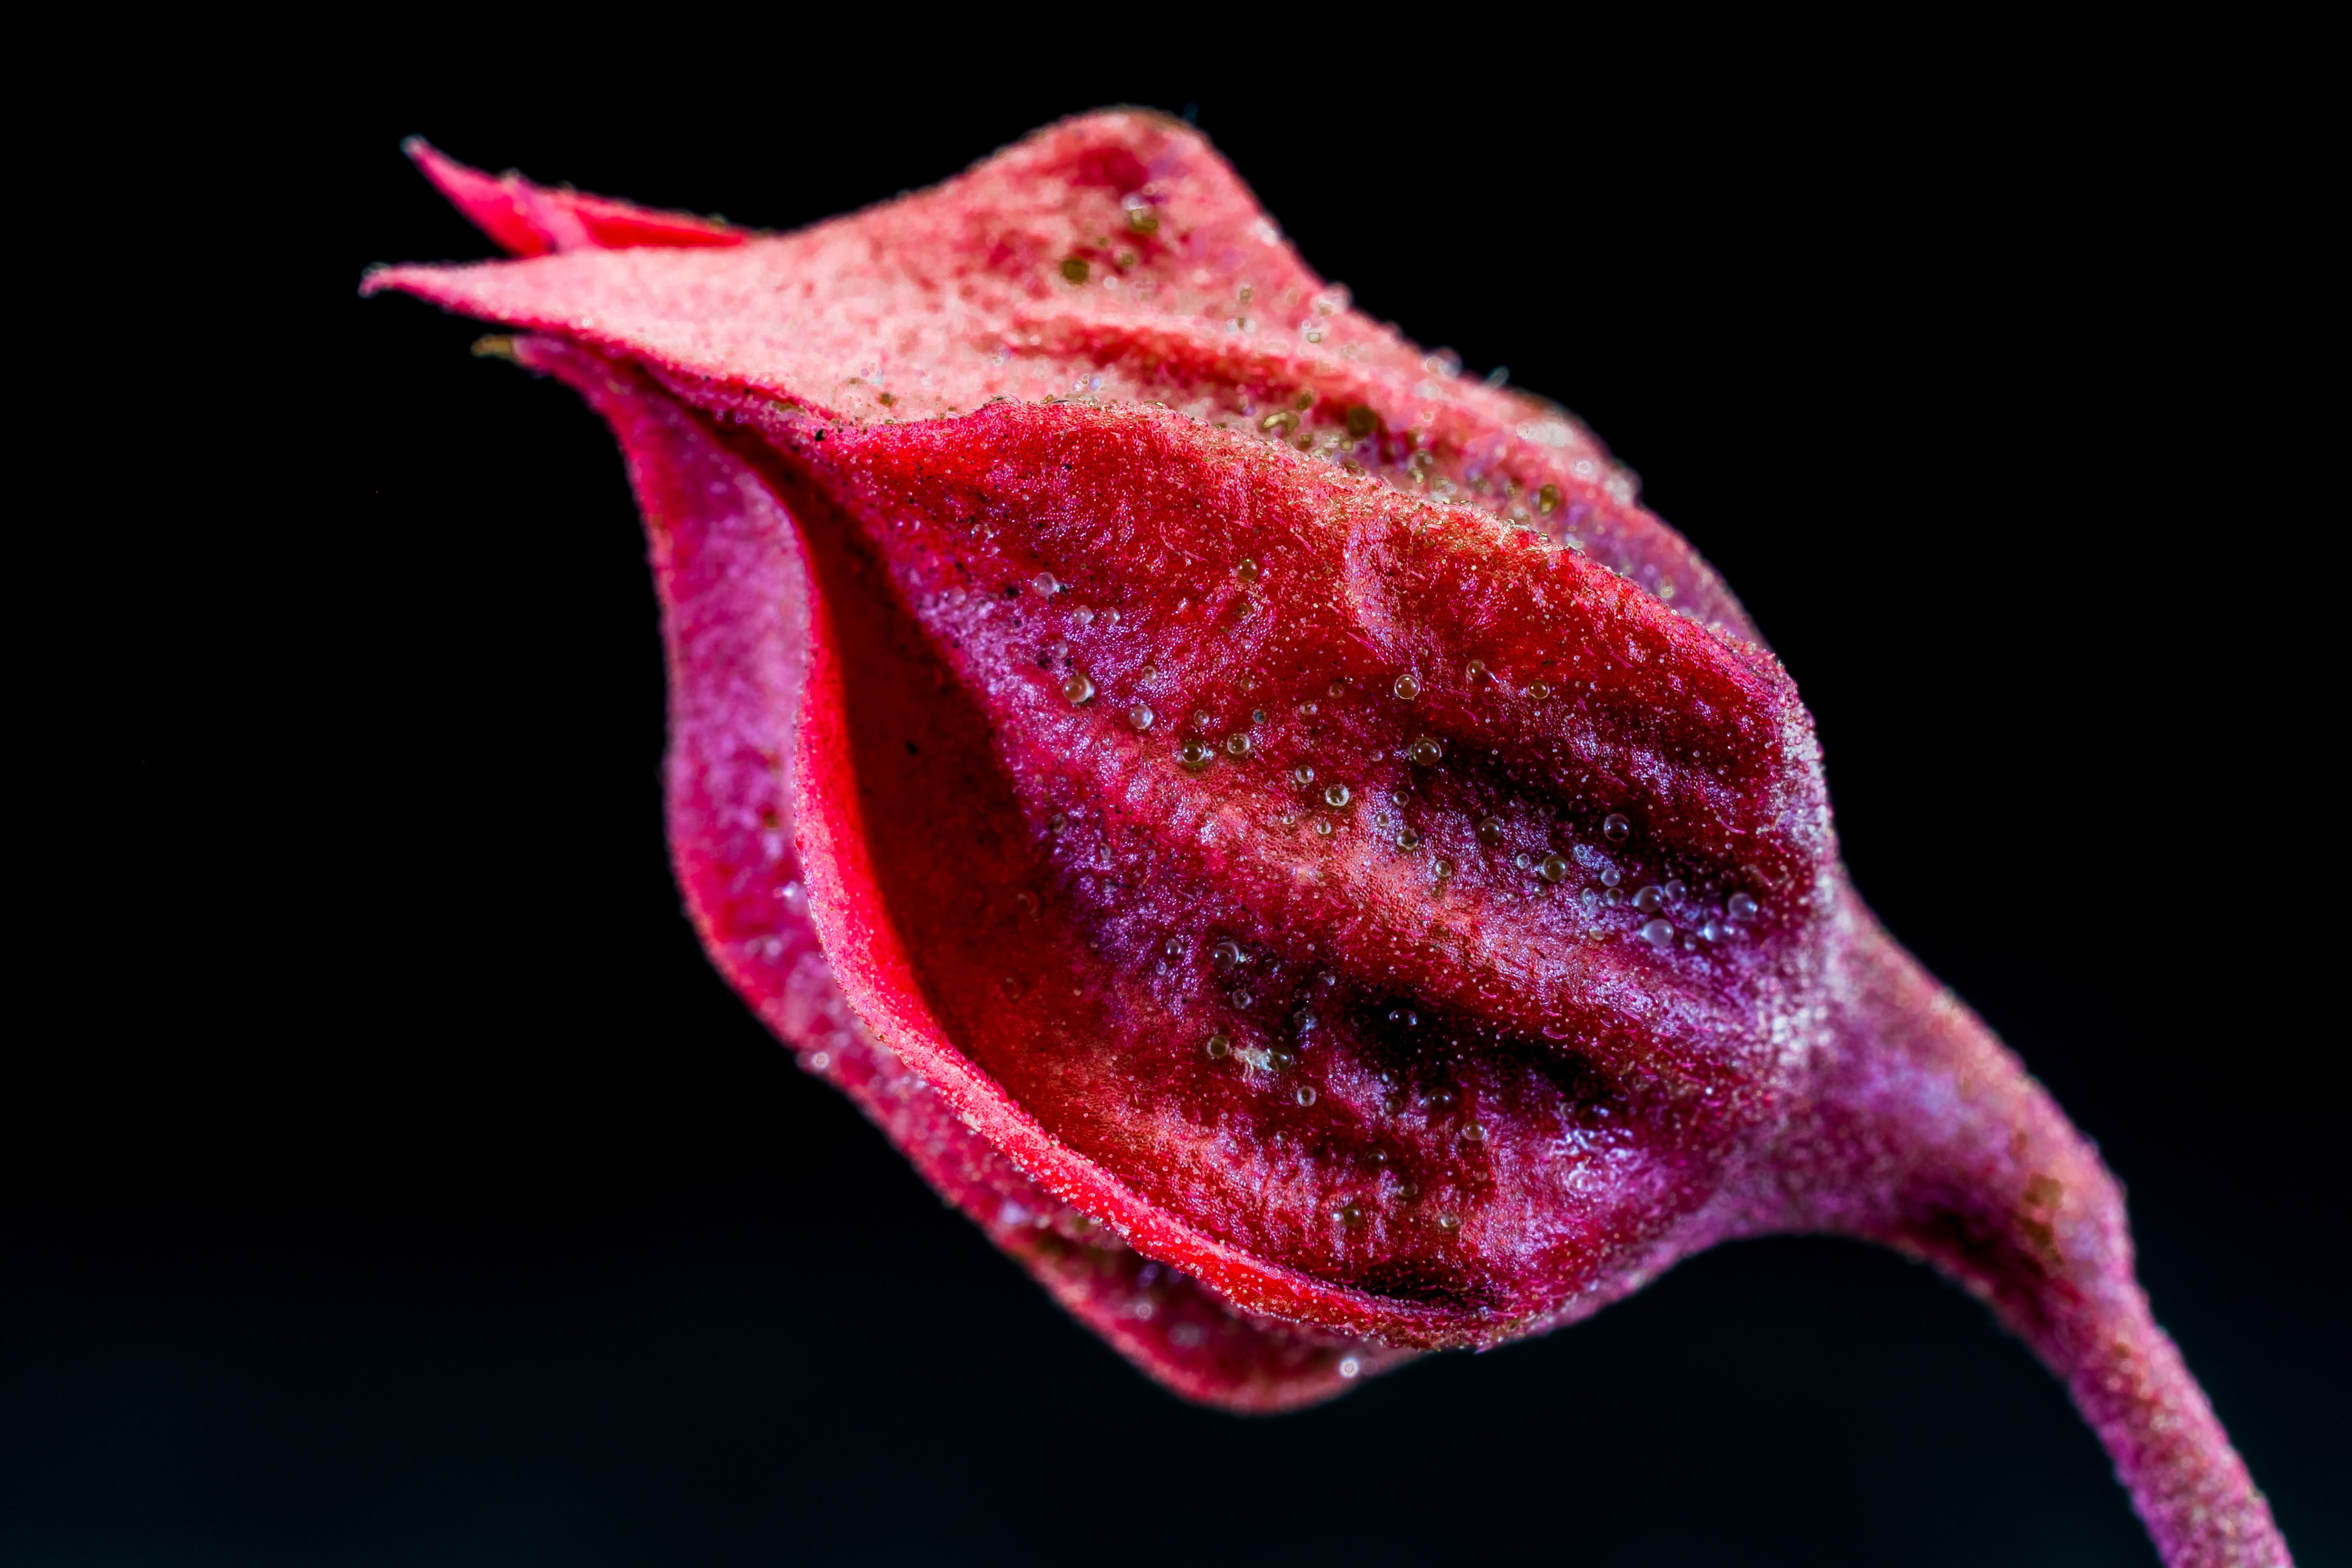 Red Flower Bud, Bloom, Blossom, Close-up, Flora, HQ Photo